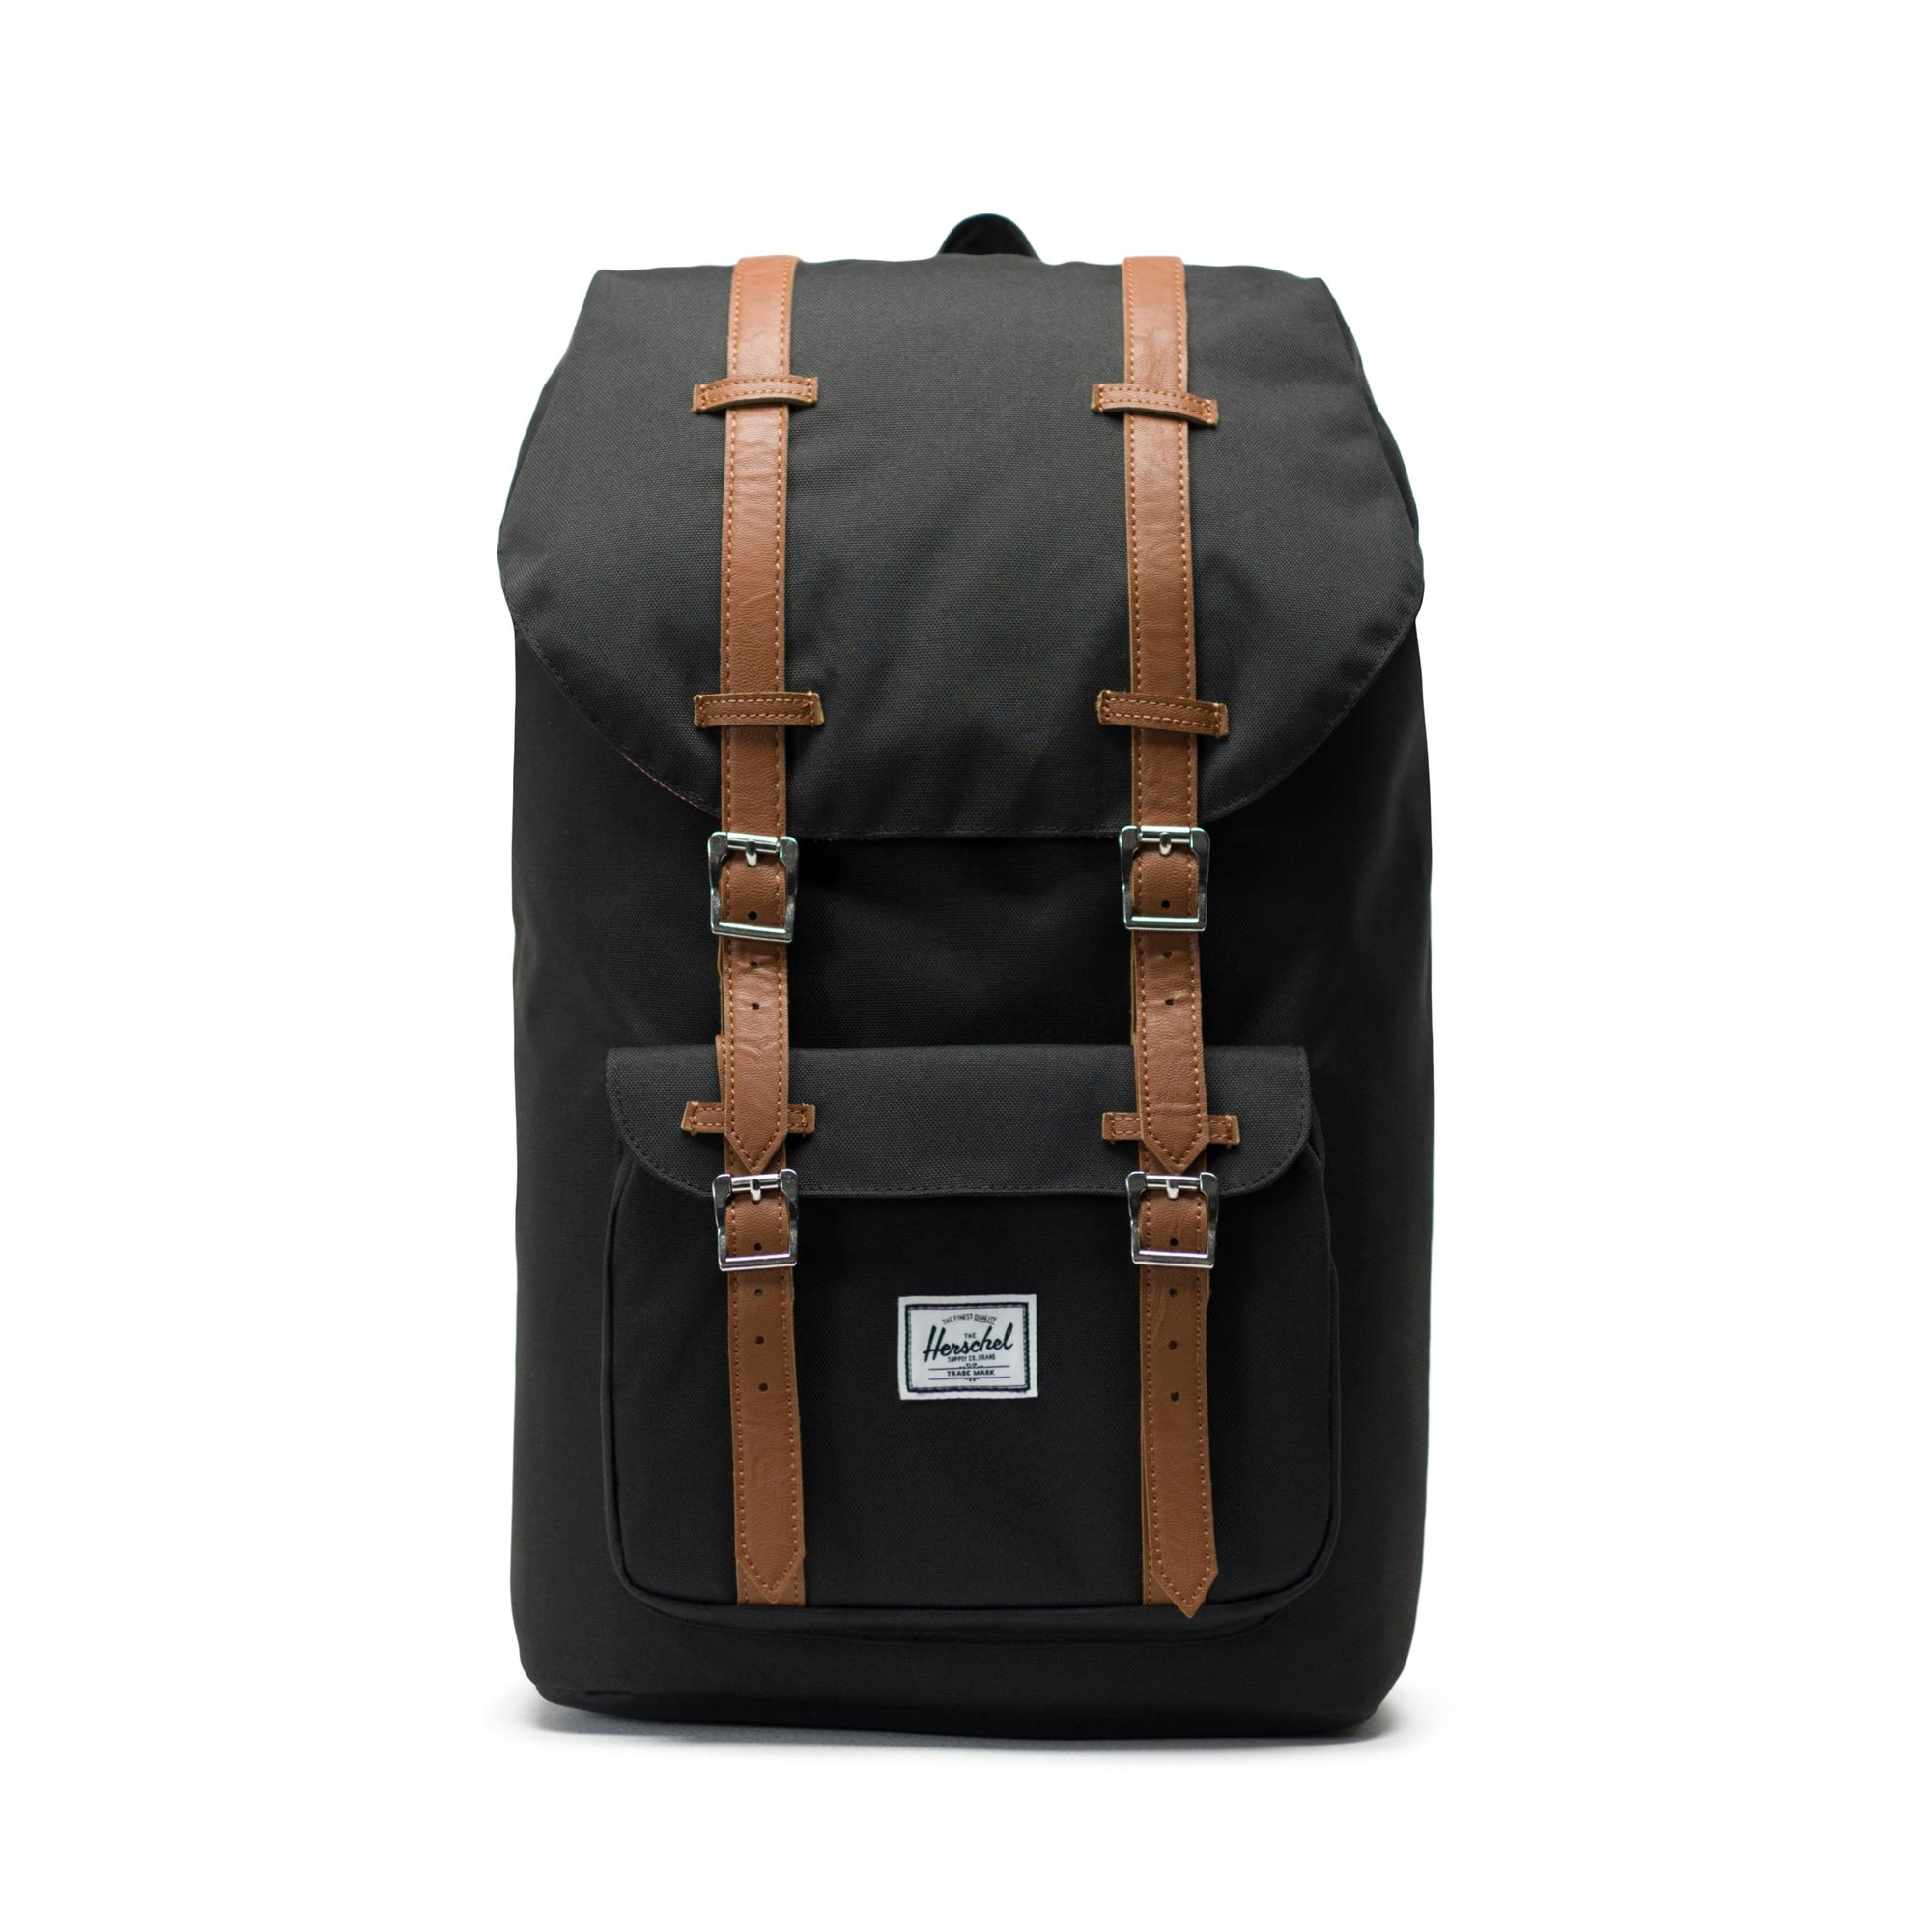 41a8066f2e6 Herschel Little America Backpack